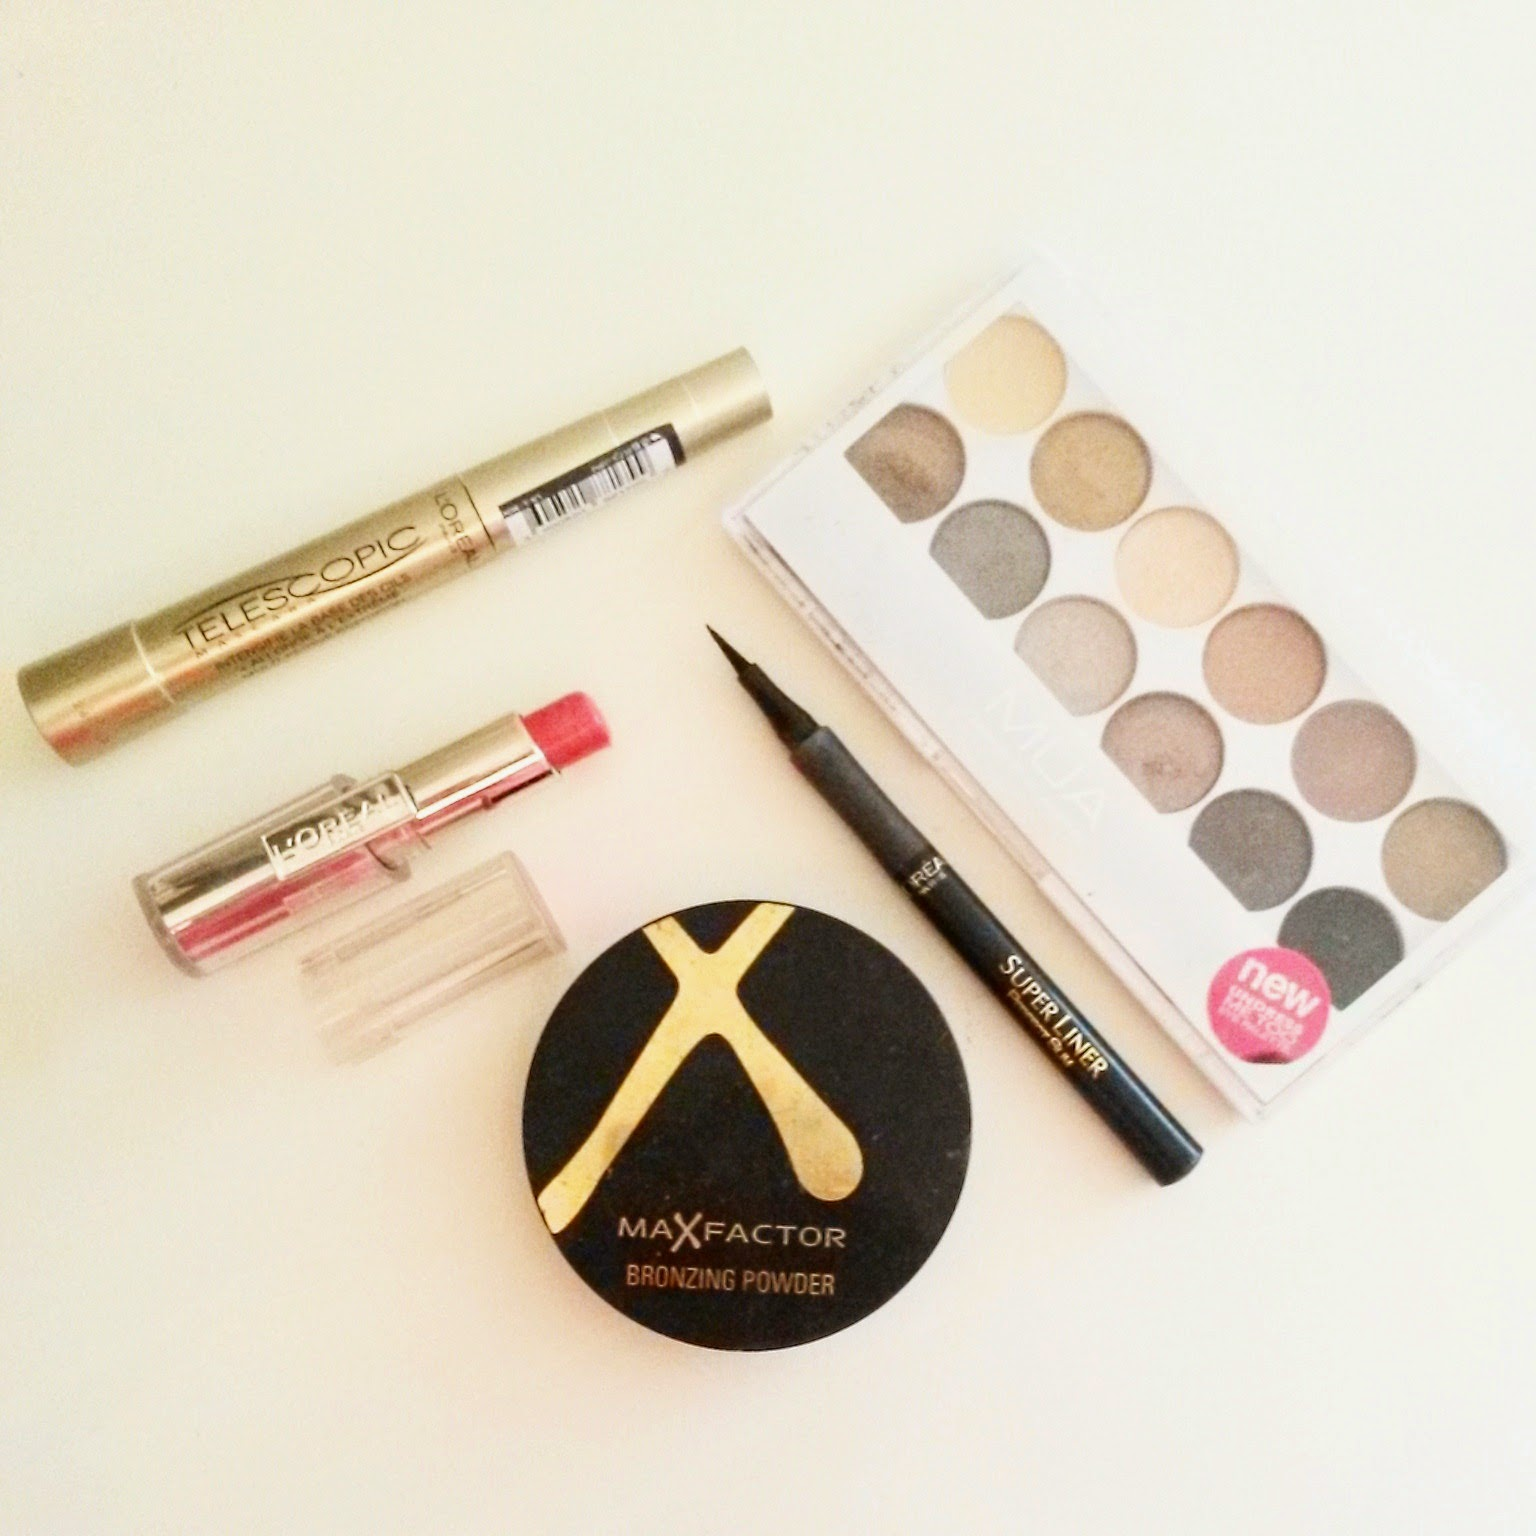 Best drugstore highstreet makeup